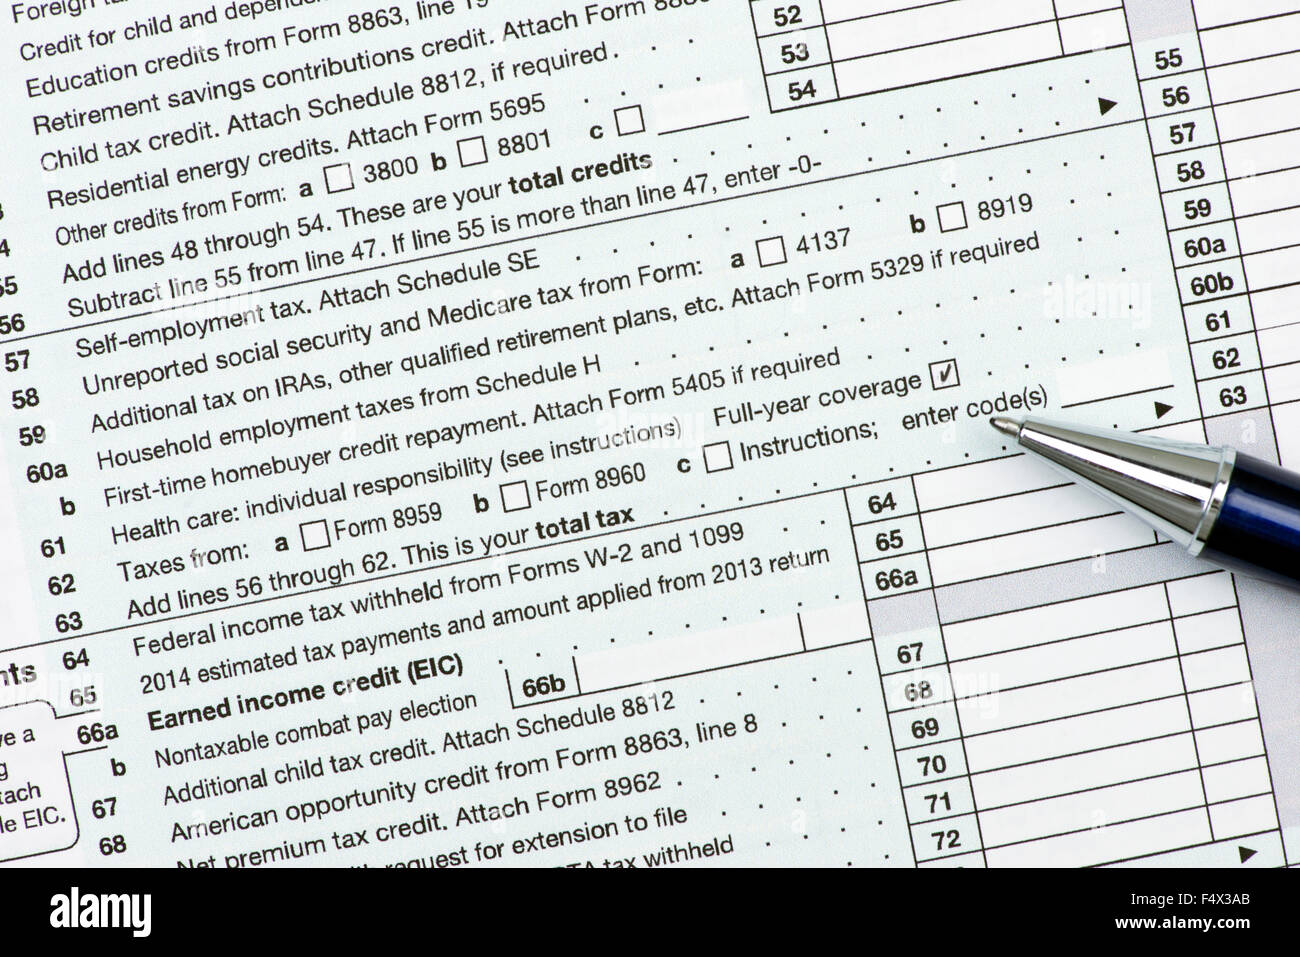 Line 61 on US income tax form 1040 with checked health care ...